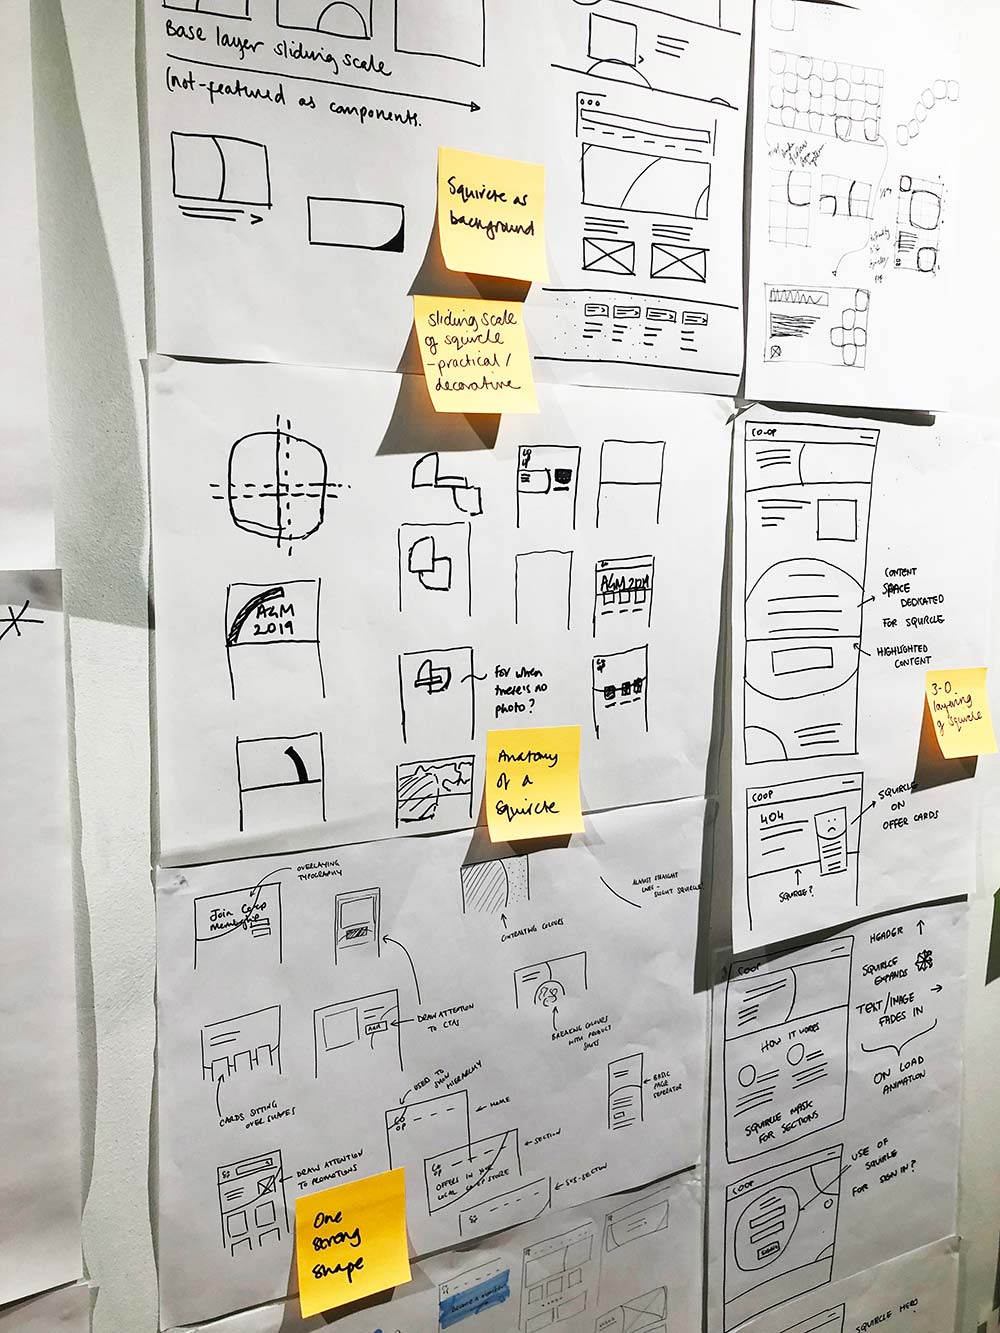 photograph of the sketches from the first workshop with designers across Co-op Digital